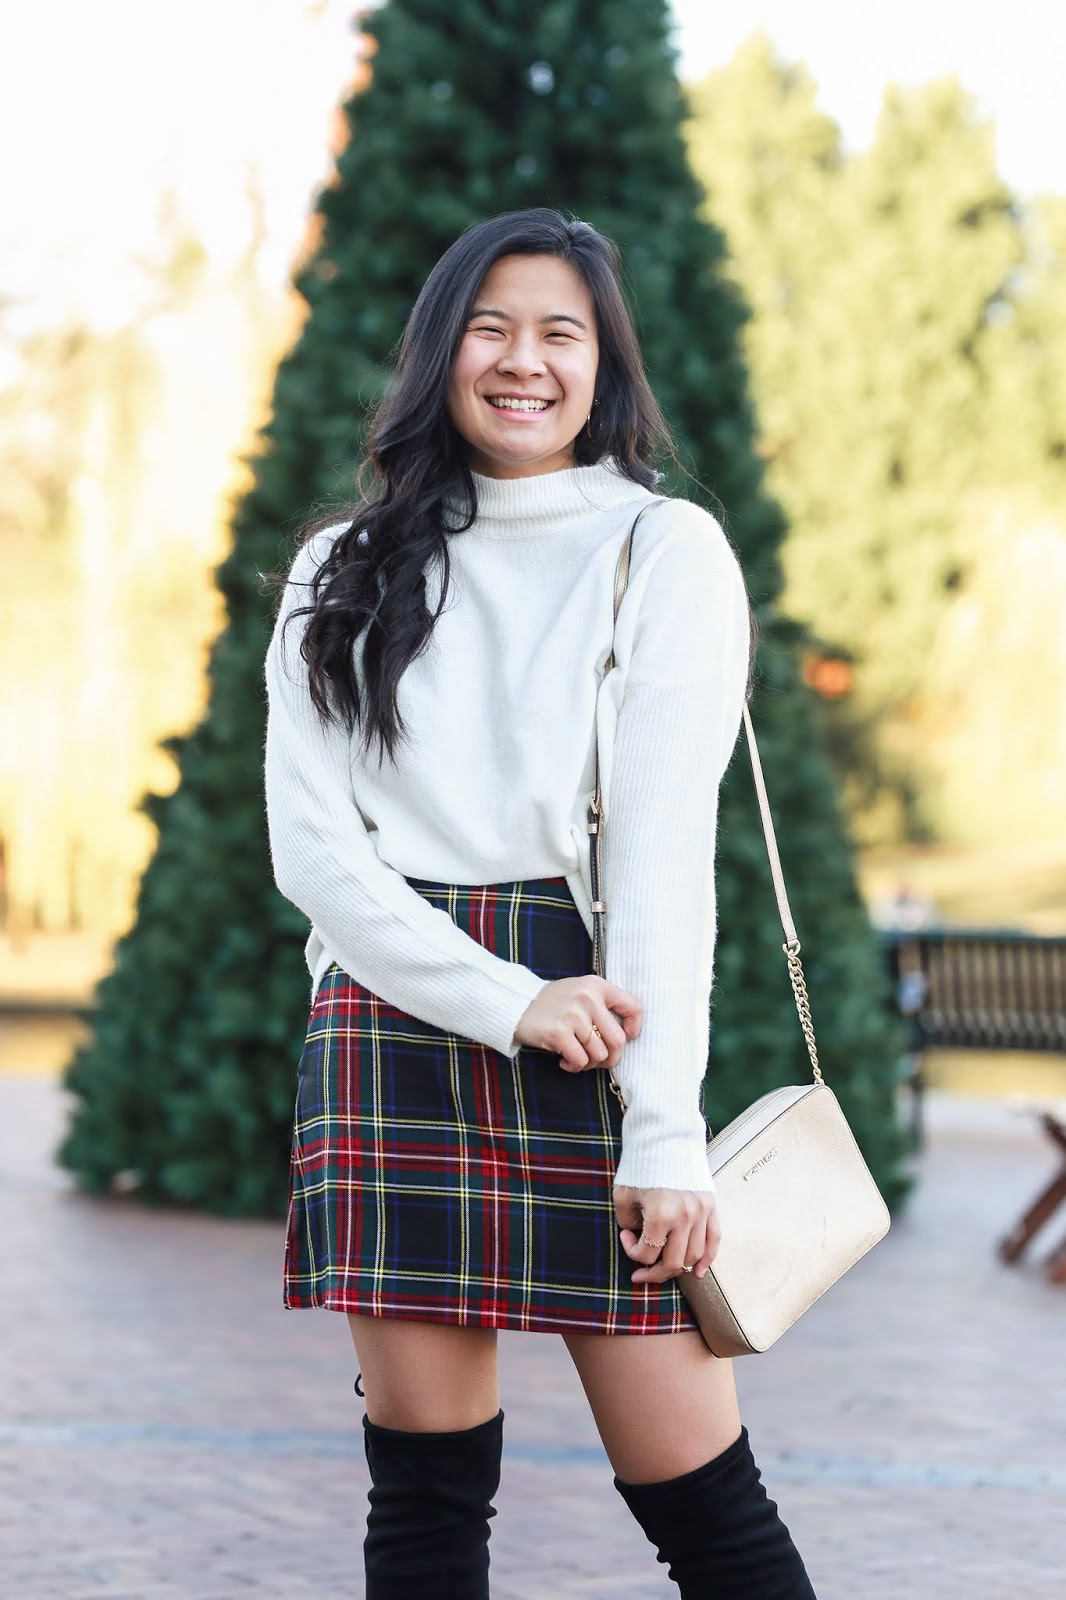 Winter holiday plaid outfit